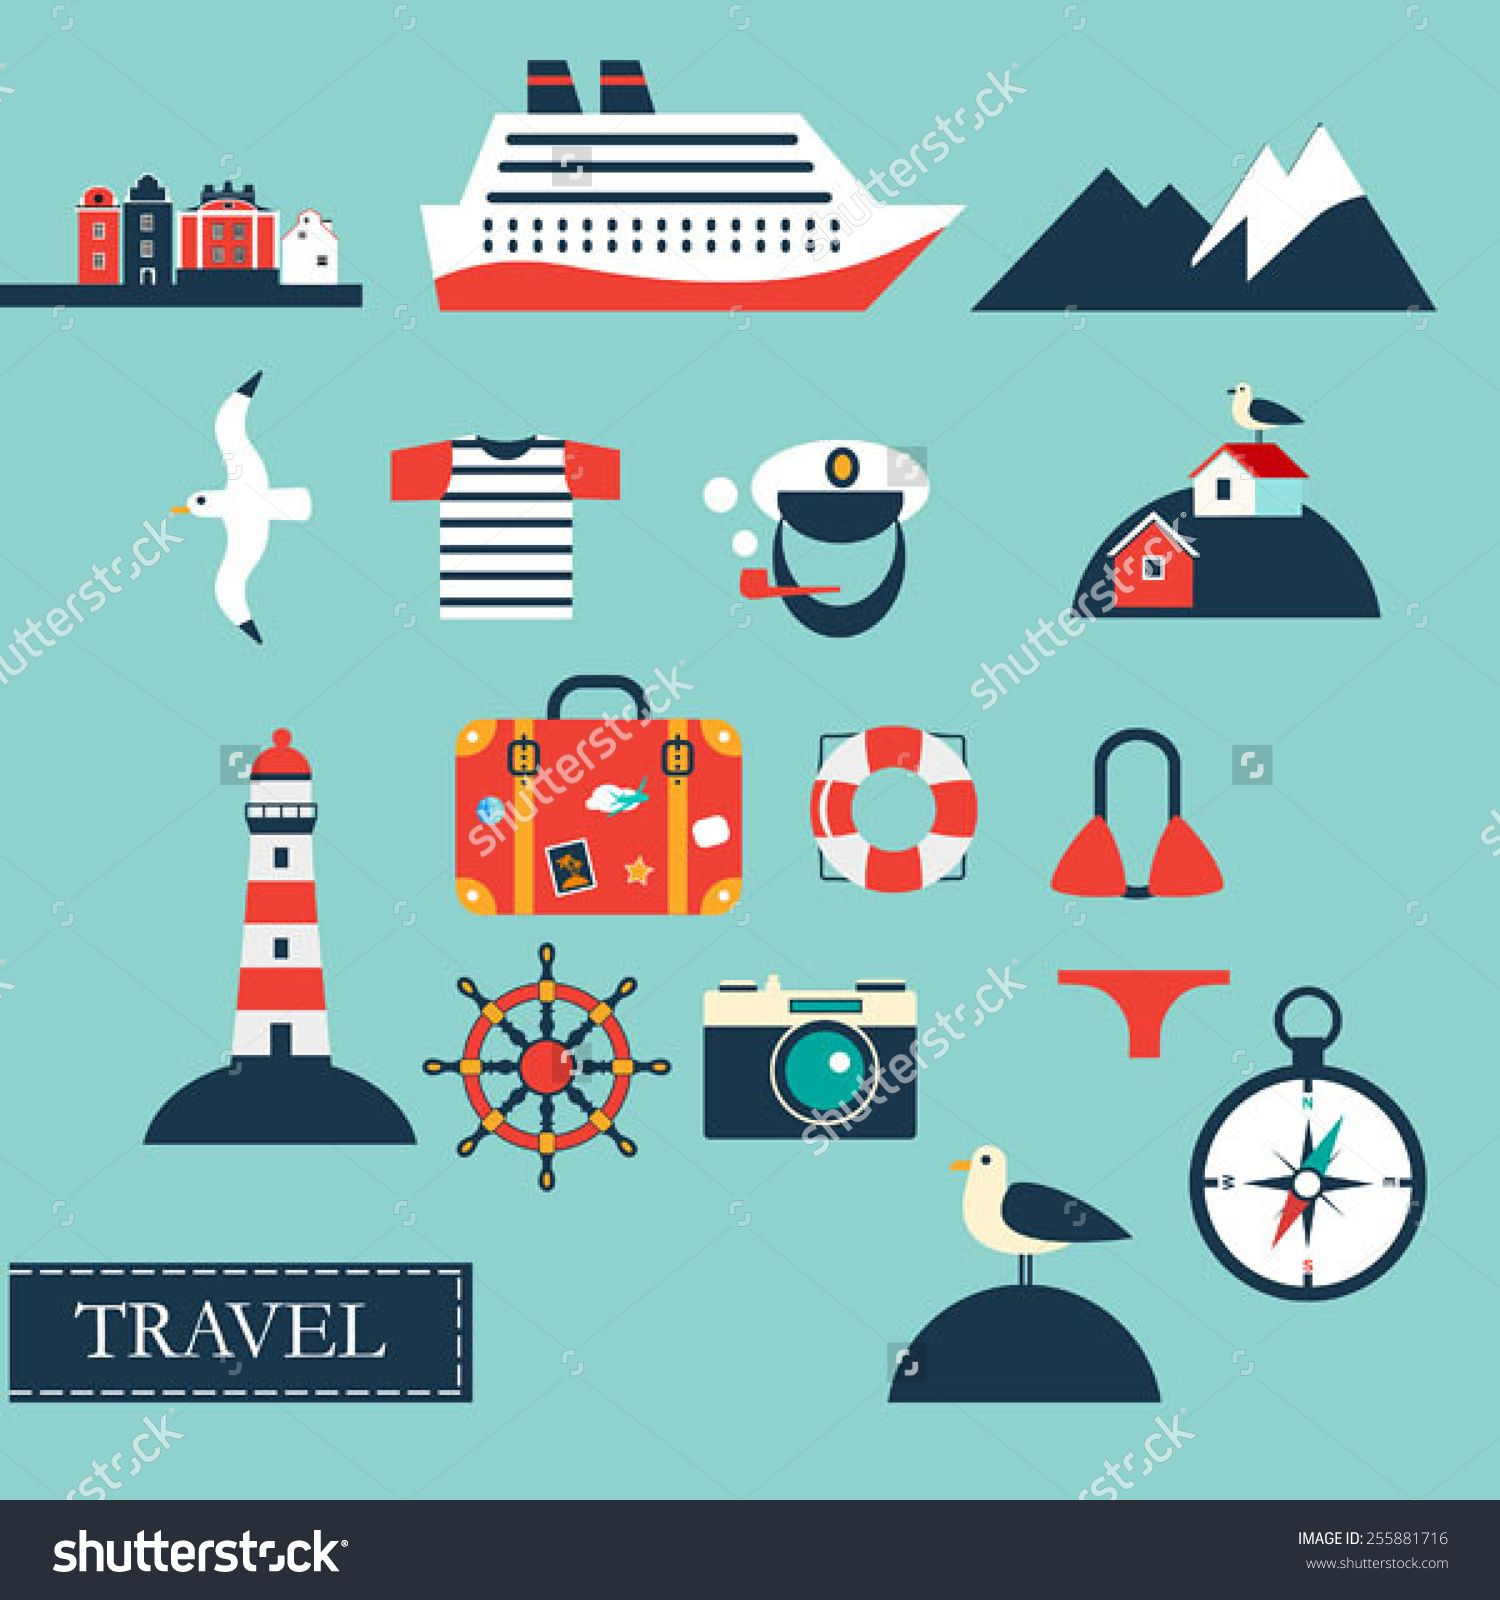 Tourism concept image sea vacation flat vector icons sea cruise